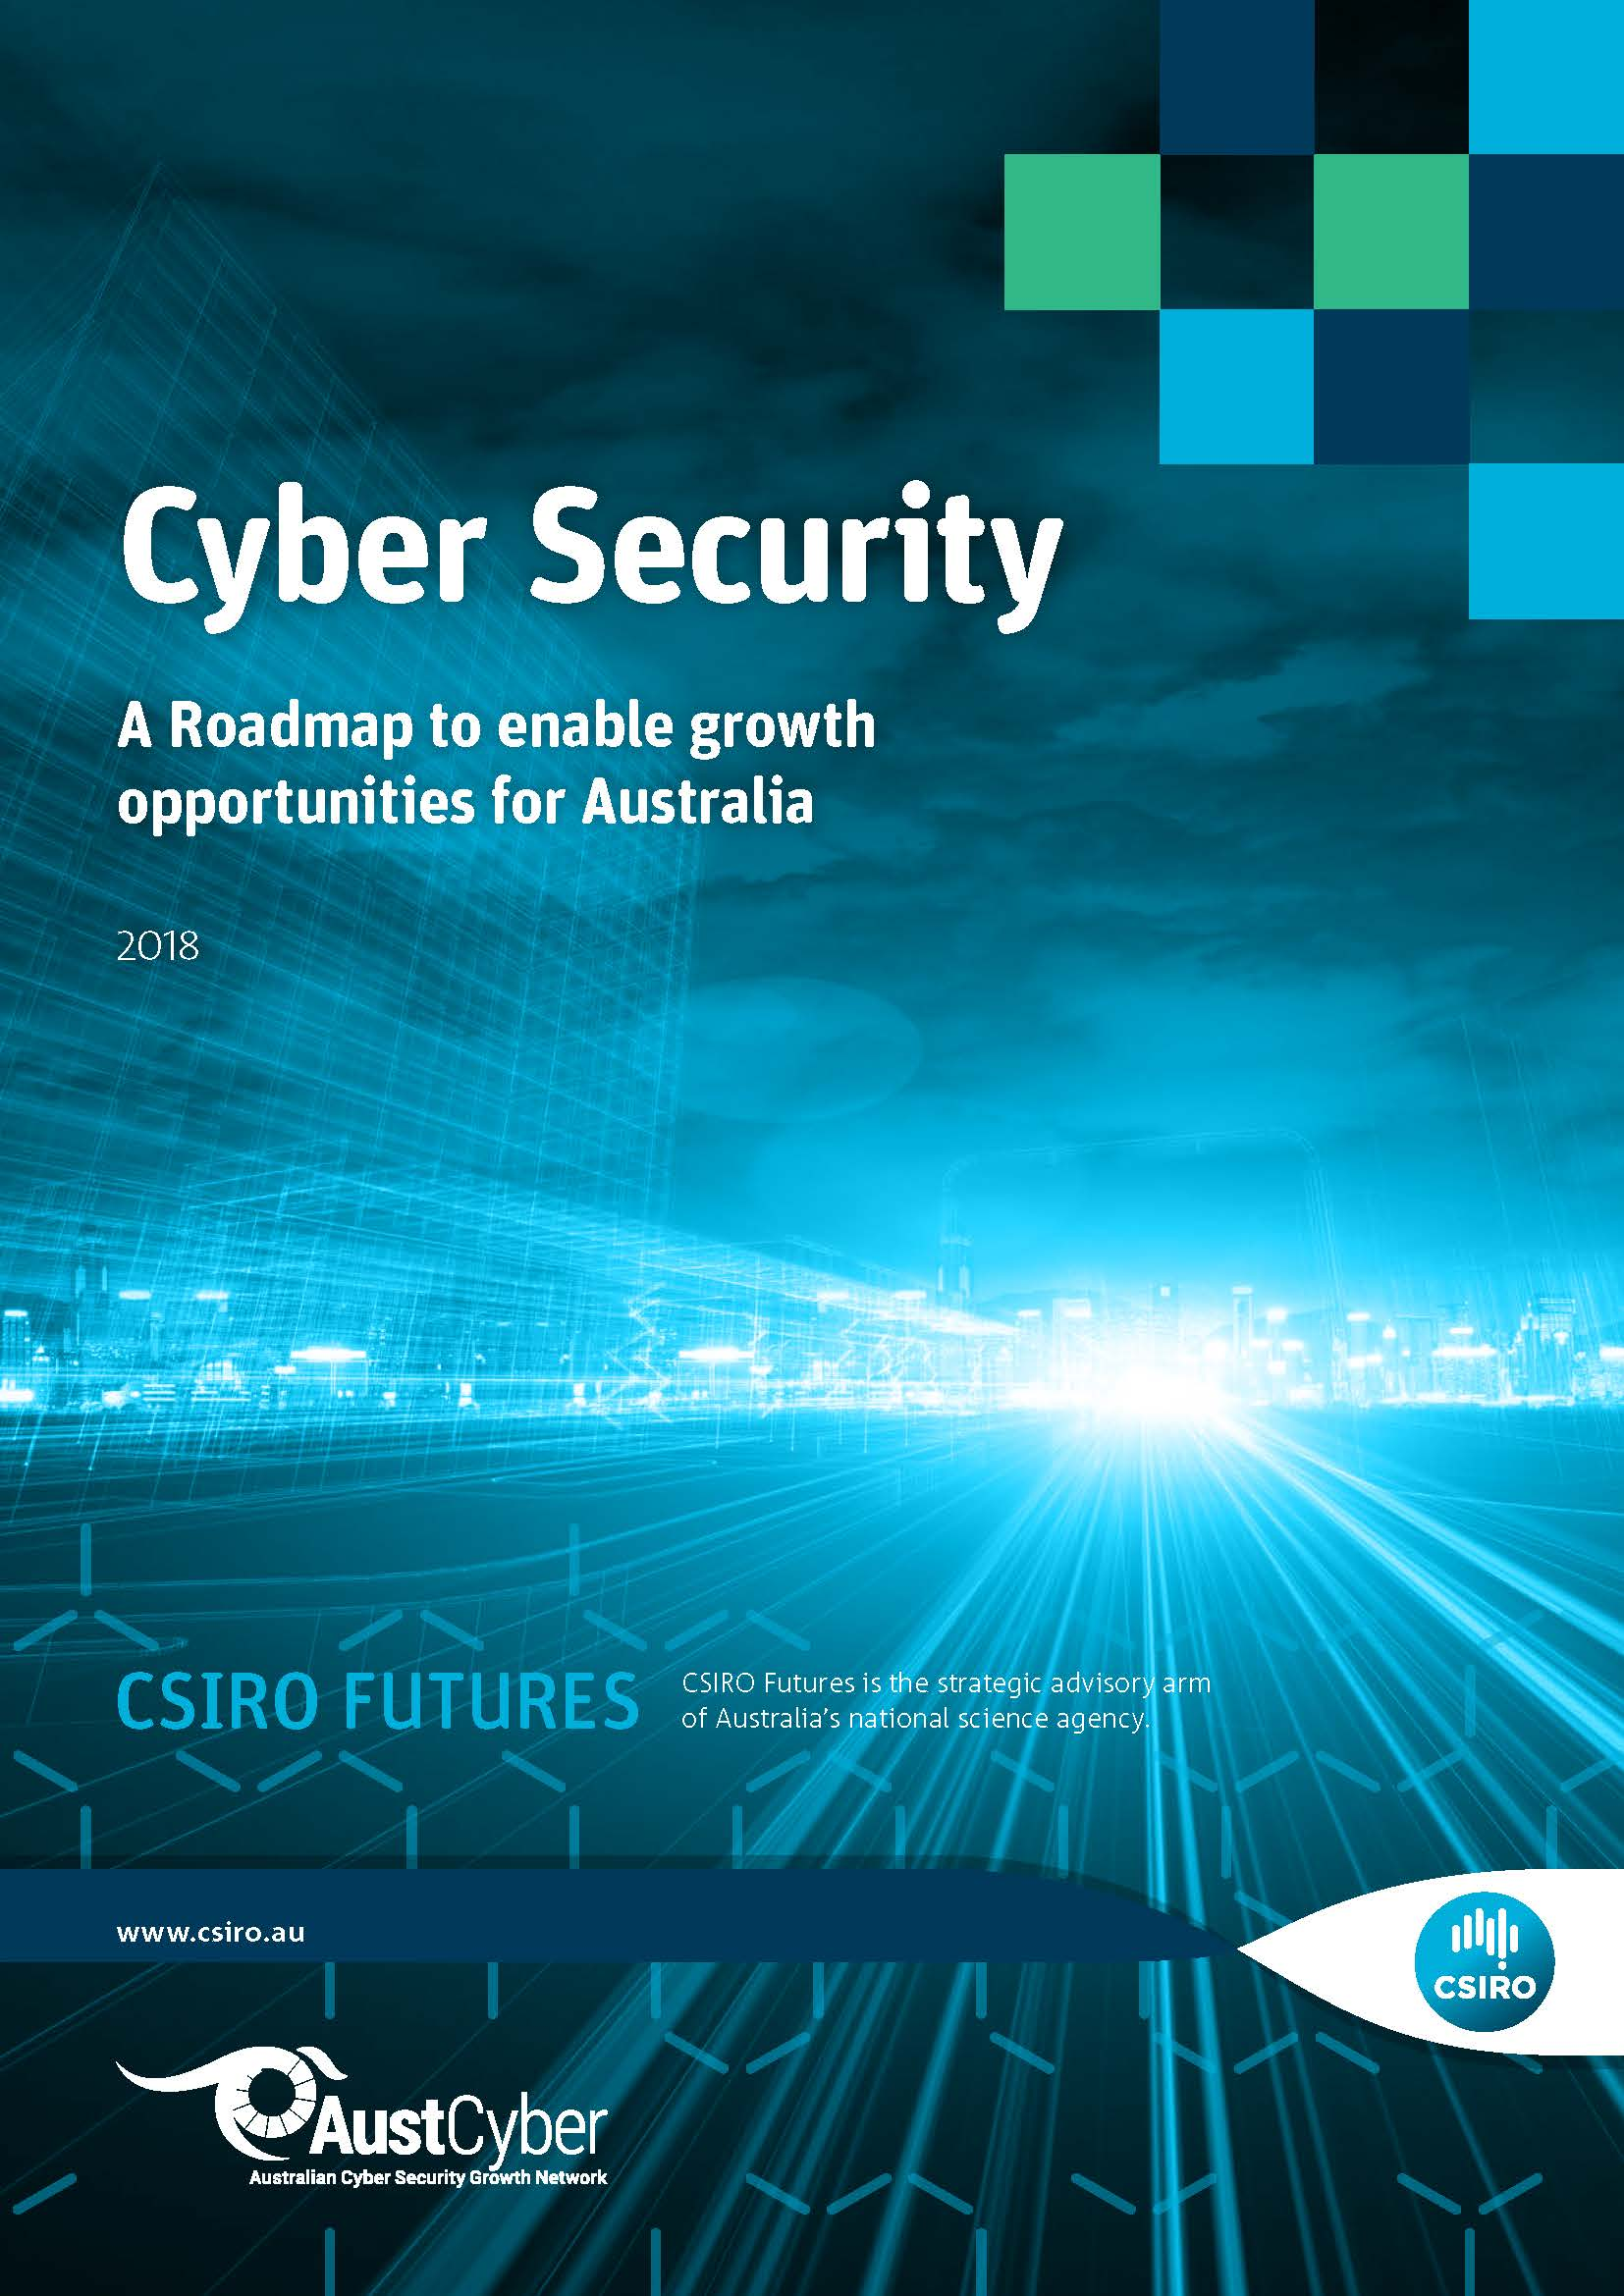 cover of cyber security road mpa - blue wiht sun streaming throguh clouds. Says - Cyber Security A Roadmap to enable growth opportunities for Australia - CSIRO Futures. AustCyber and CSIRO logo on bottom.